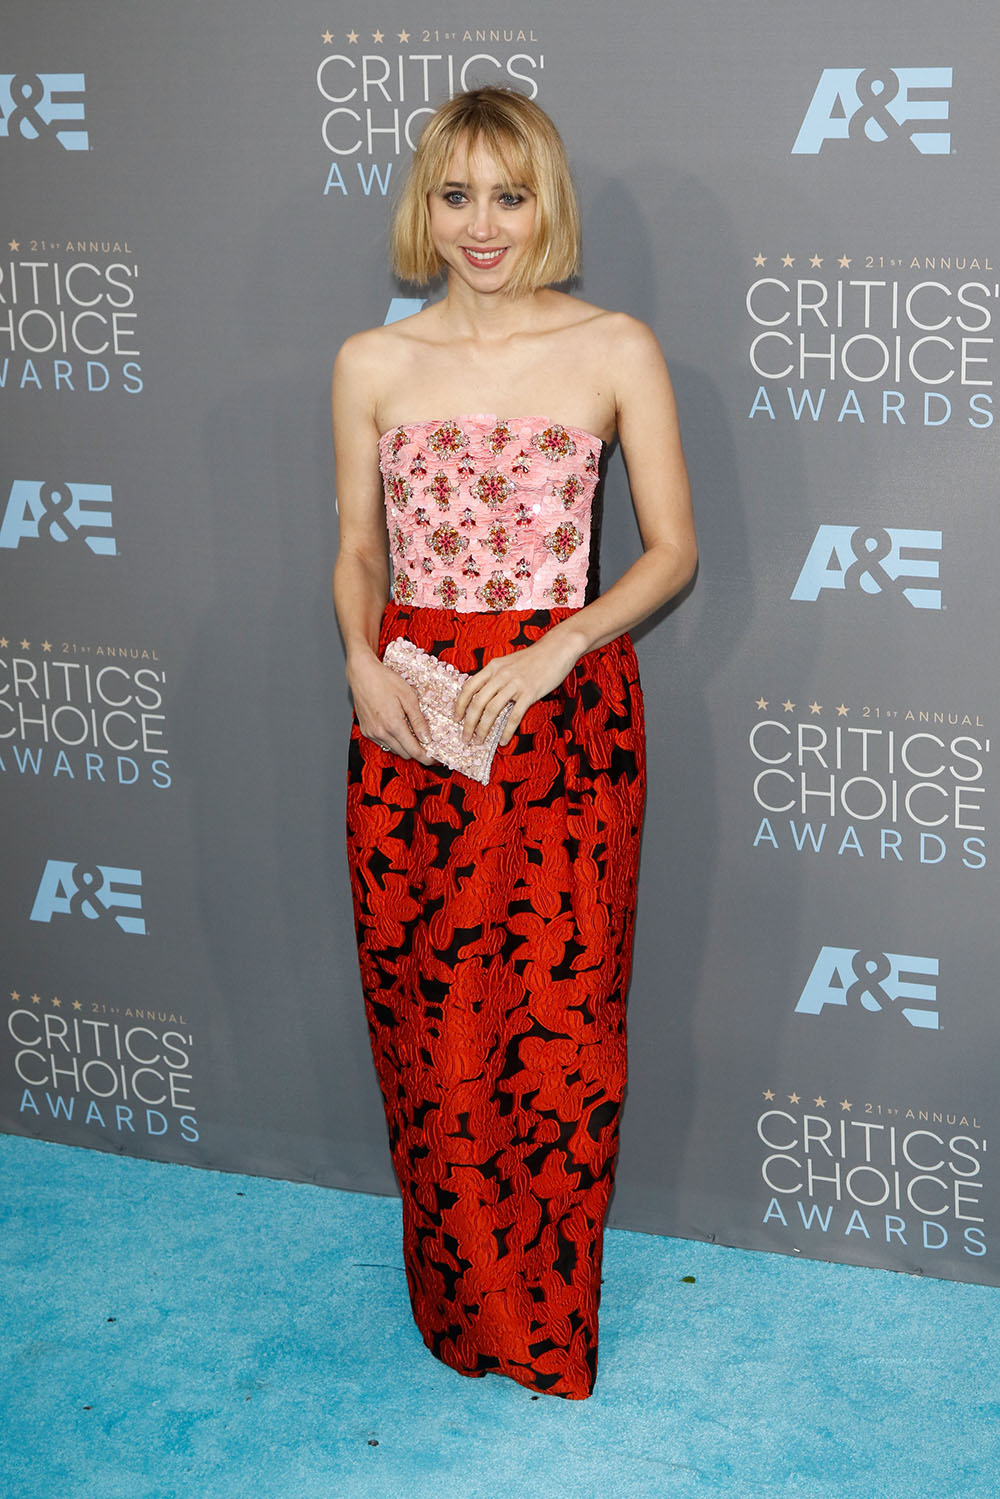 21st Annual Critics Choice Awards held at Barker Hangar at Santa Monica Airport - Arrivals Featuring: Zoe Kazan Where: Los Angeles, California, United States When: 17 Jan 2016 Credit: WENN.com **Not available for publication in Germany**